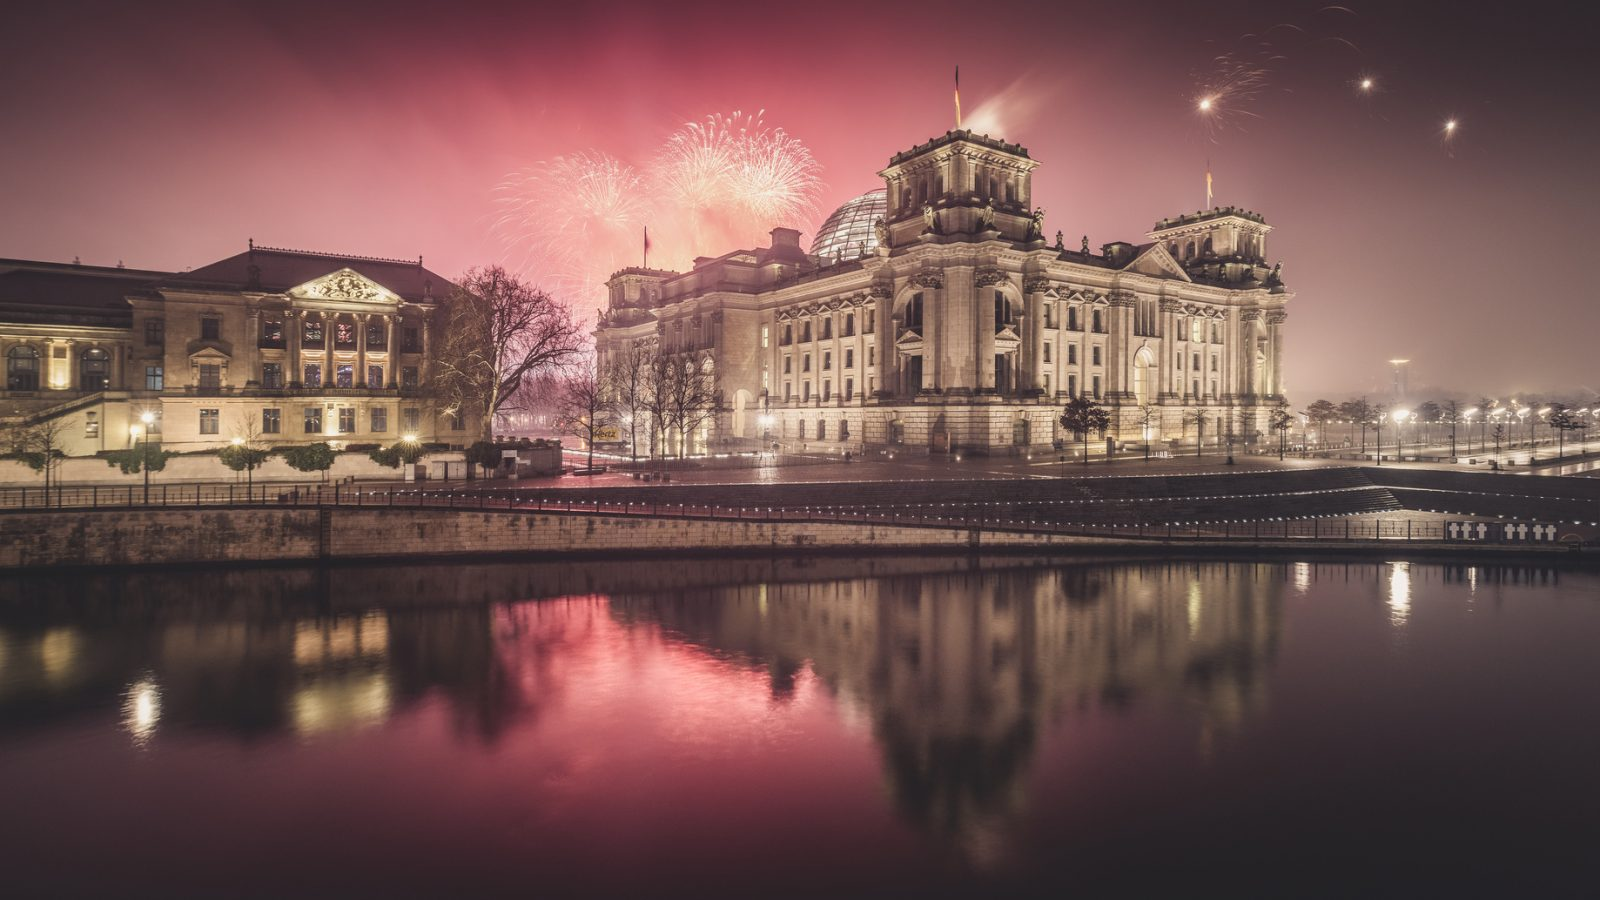 Berlin's Reichstag building by night, shot from the other side of the Spree, with fireworks in the background. Picture used to illustrate an article on plans for a moat for the Reichstag.